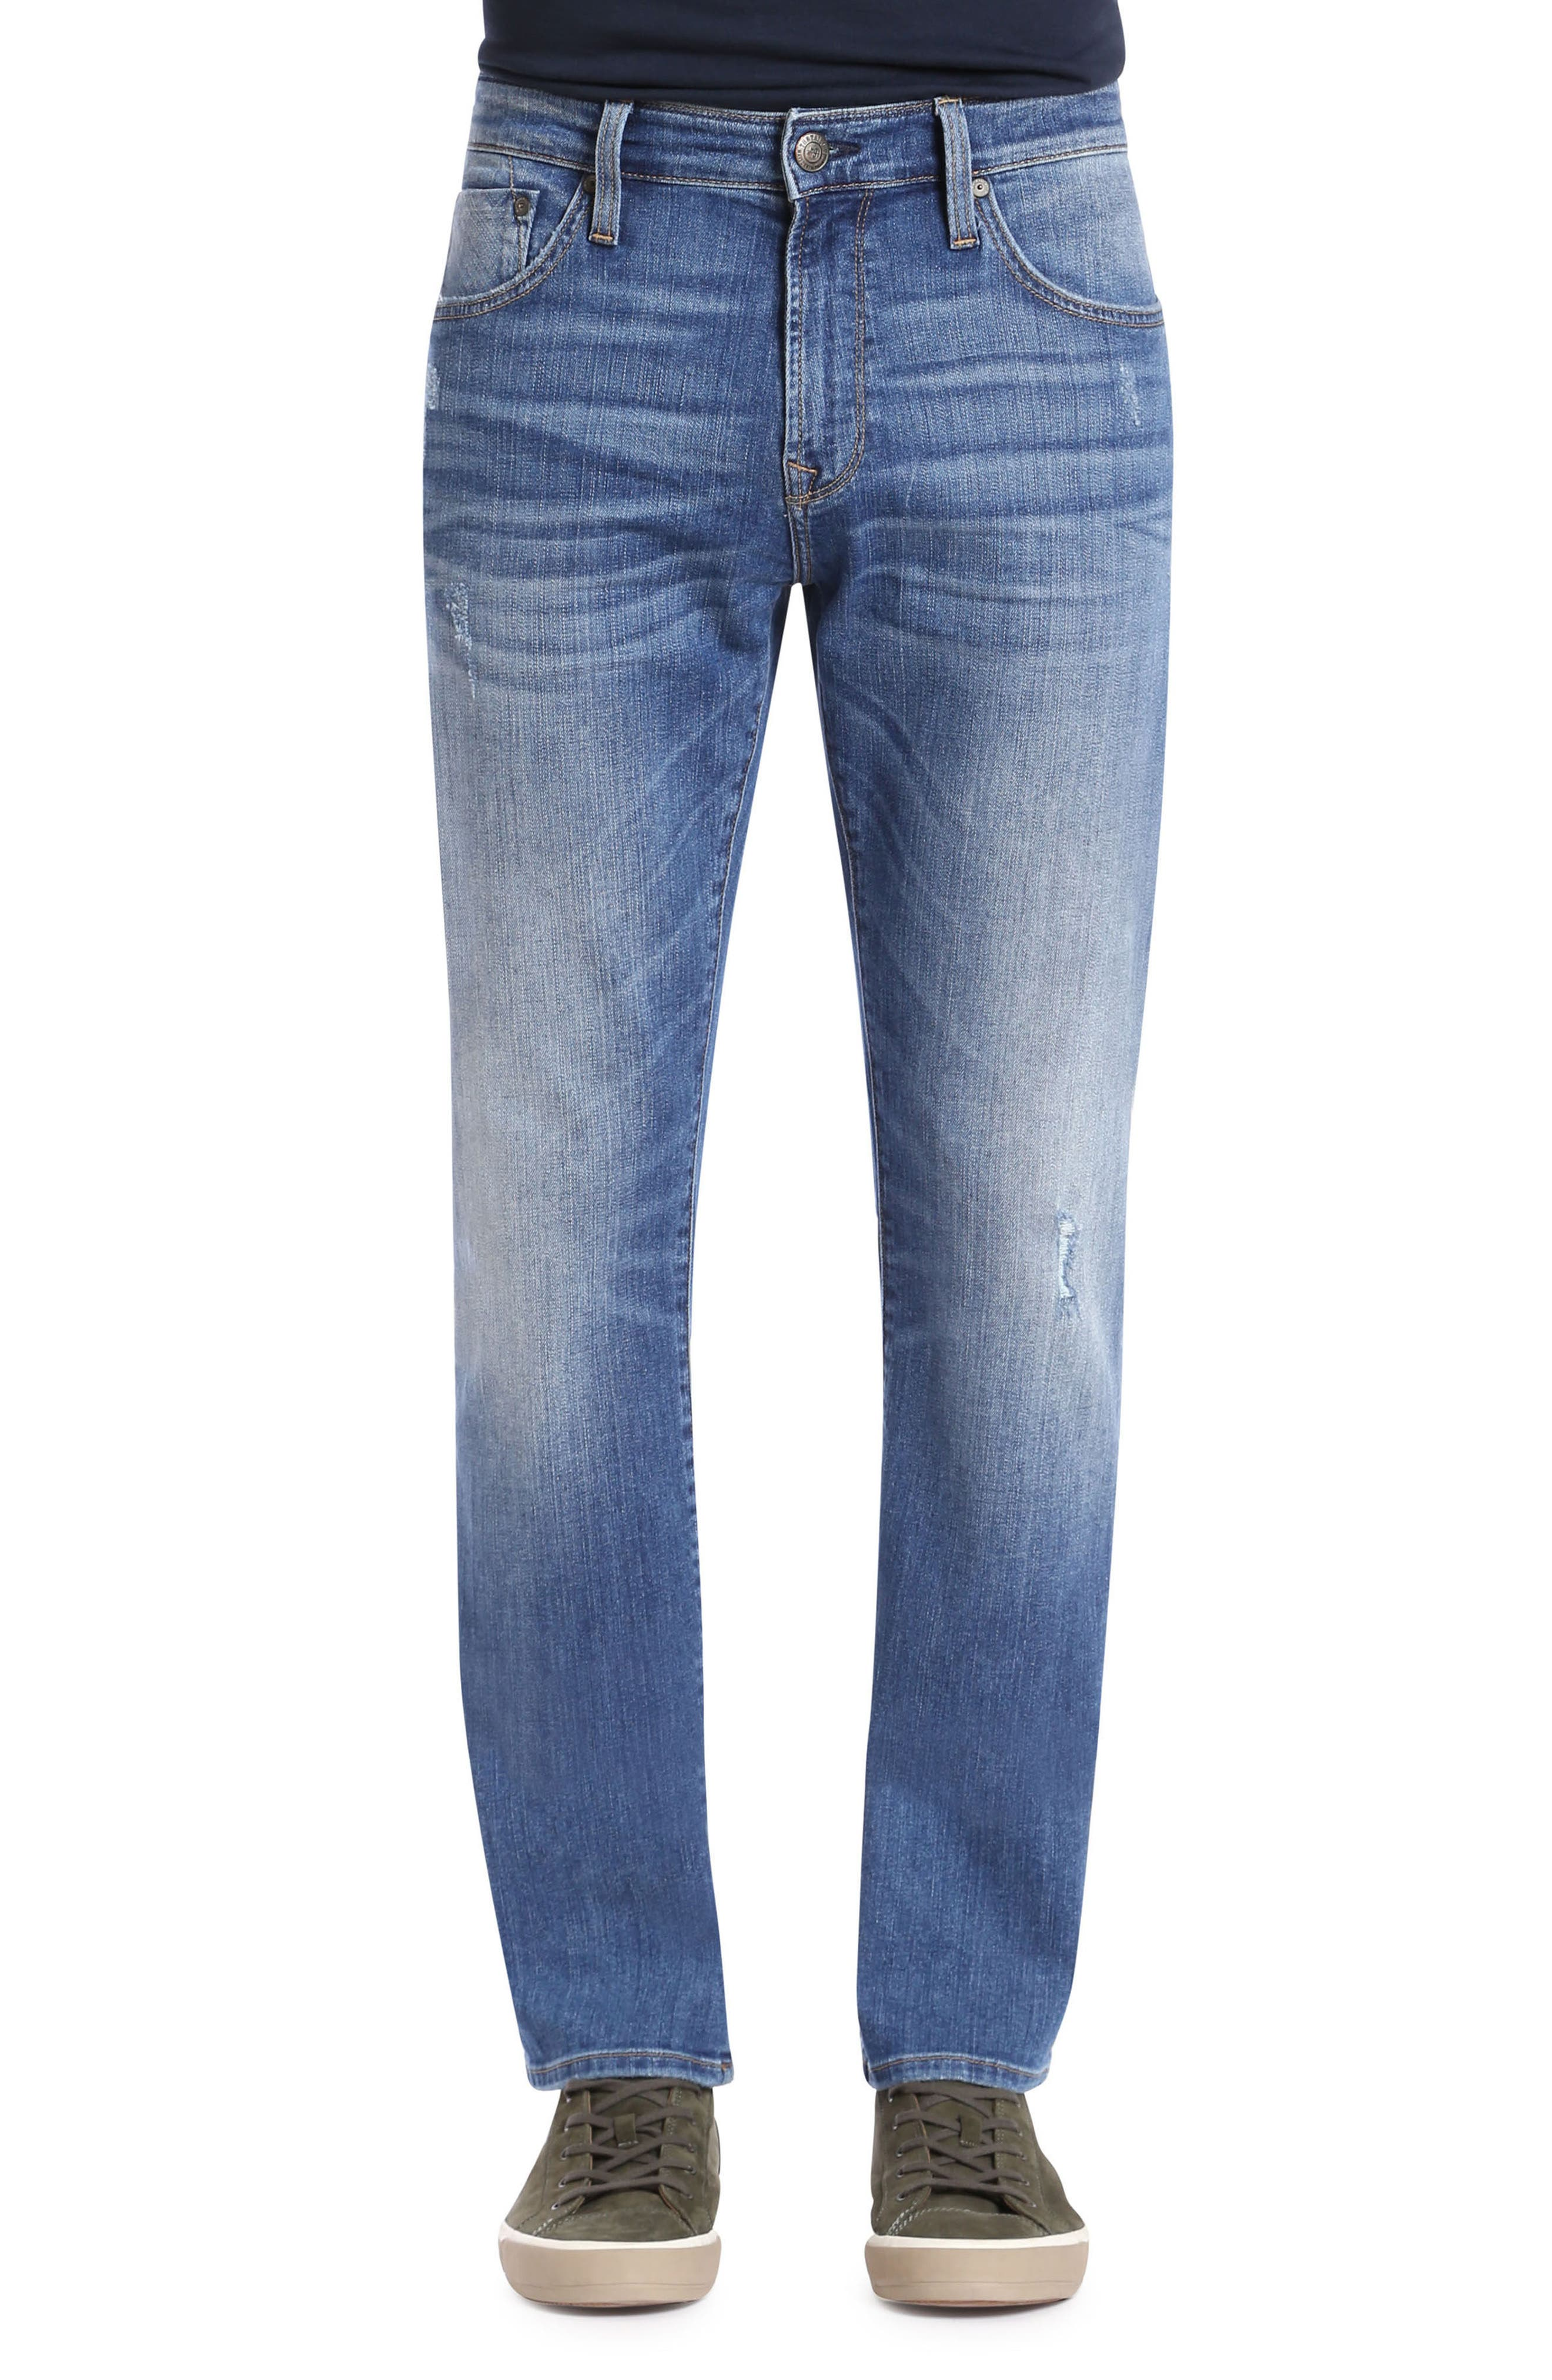 MAVI JEANS Zach Straight Fit Jeans in Authentic Vintage